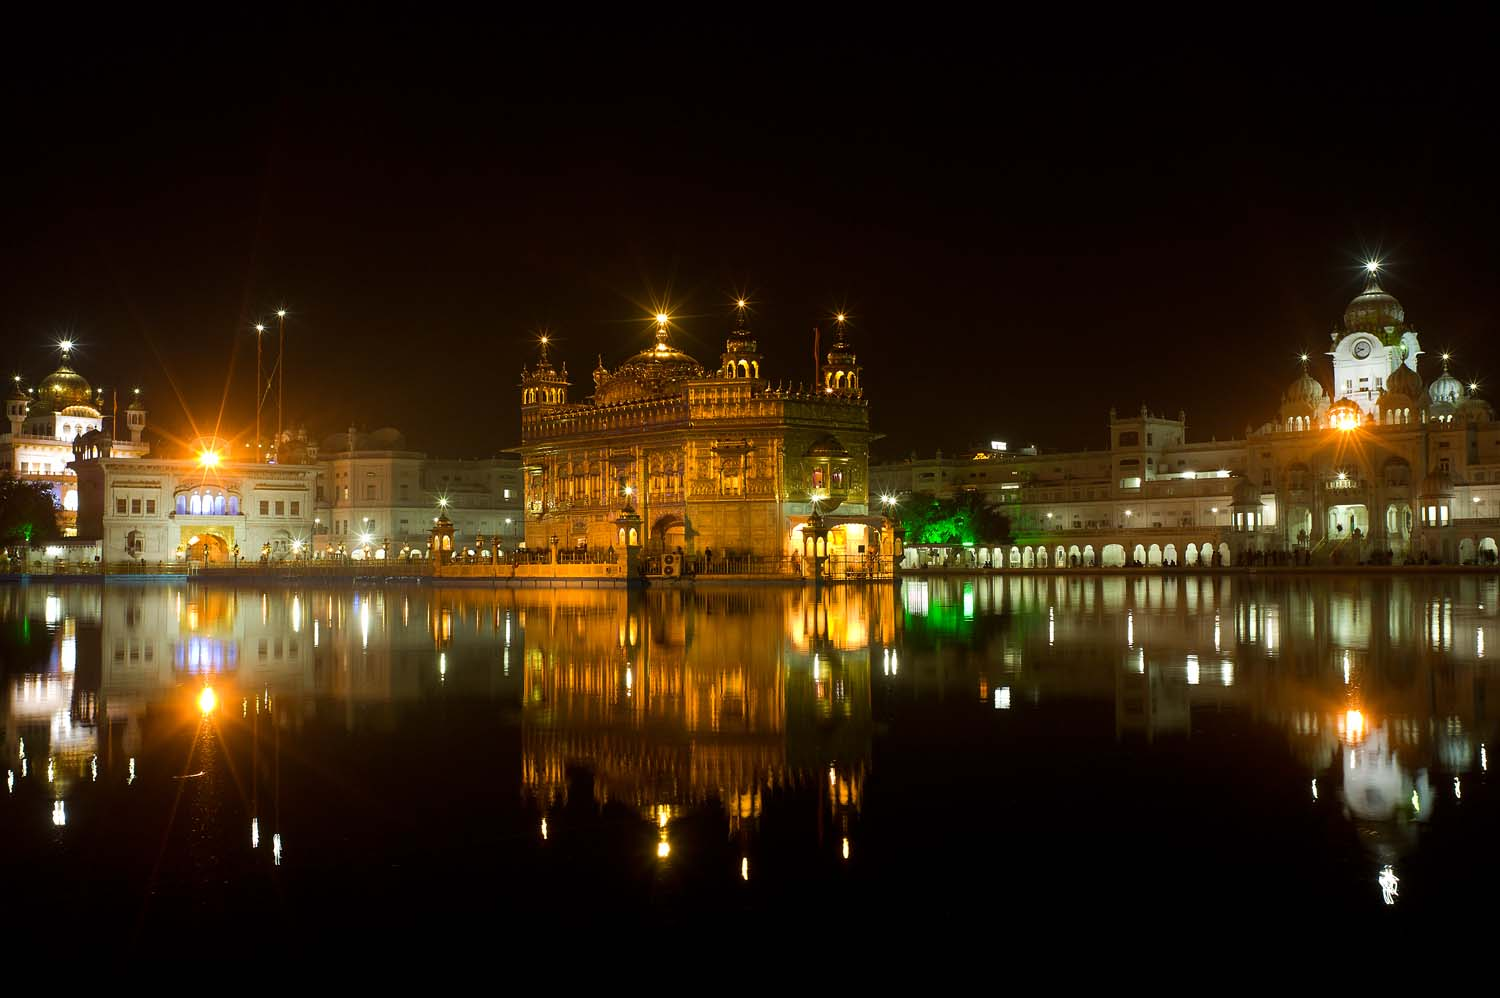 The Golden Temple, the holiest site in Sikhism